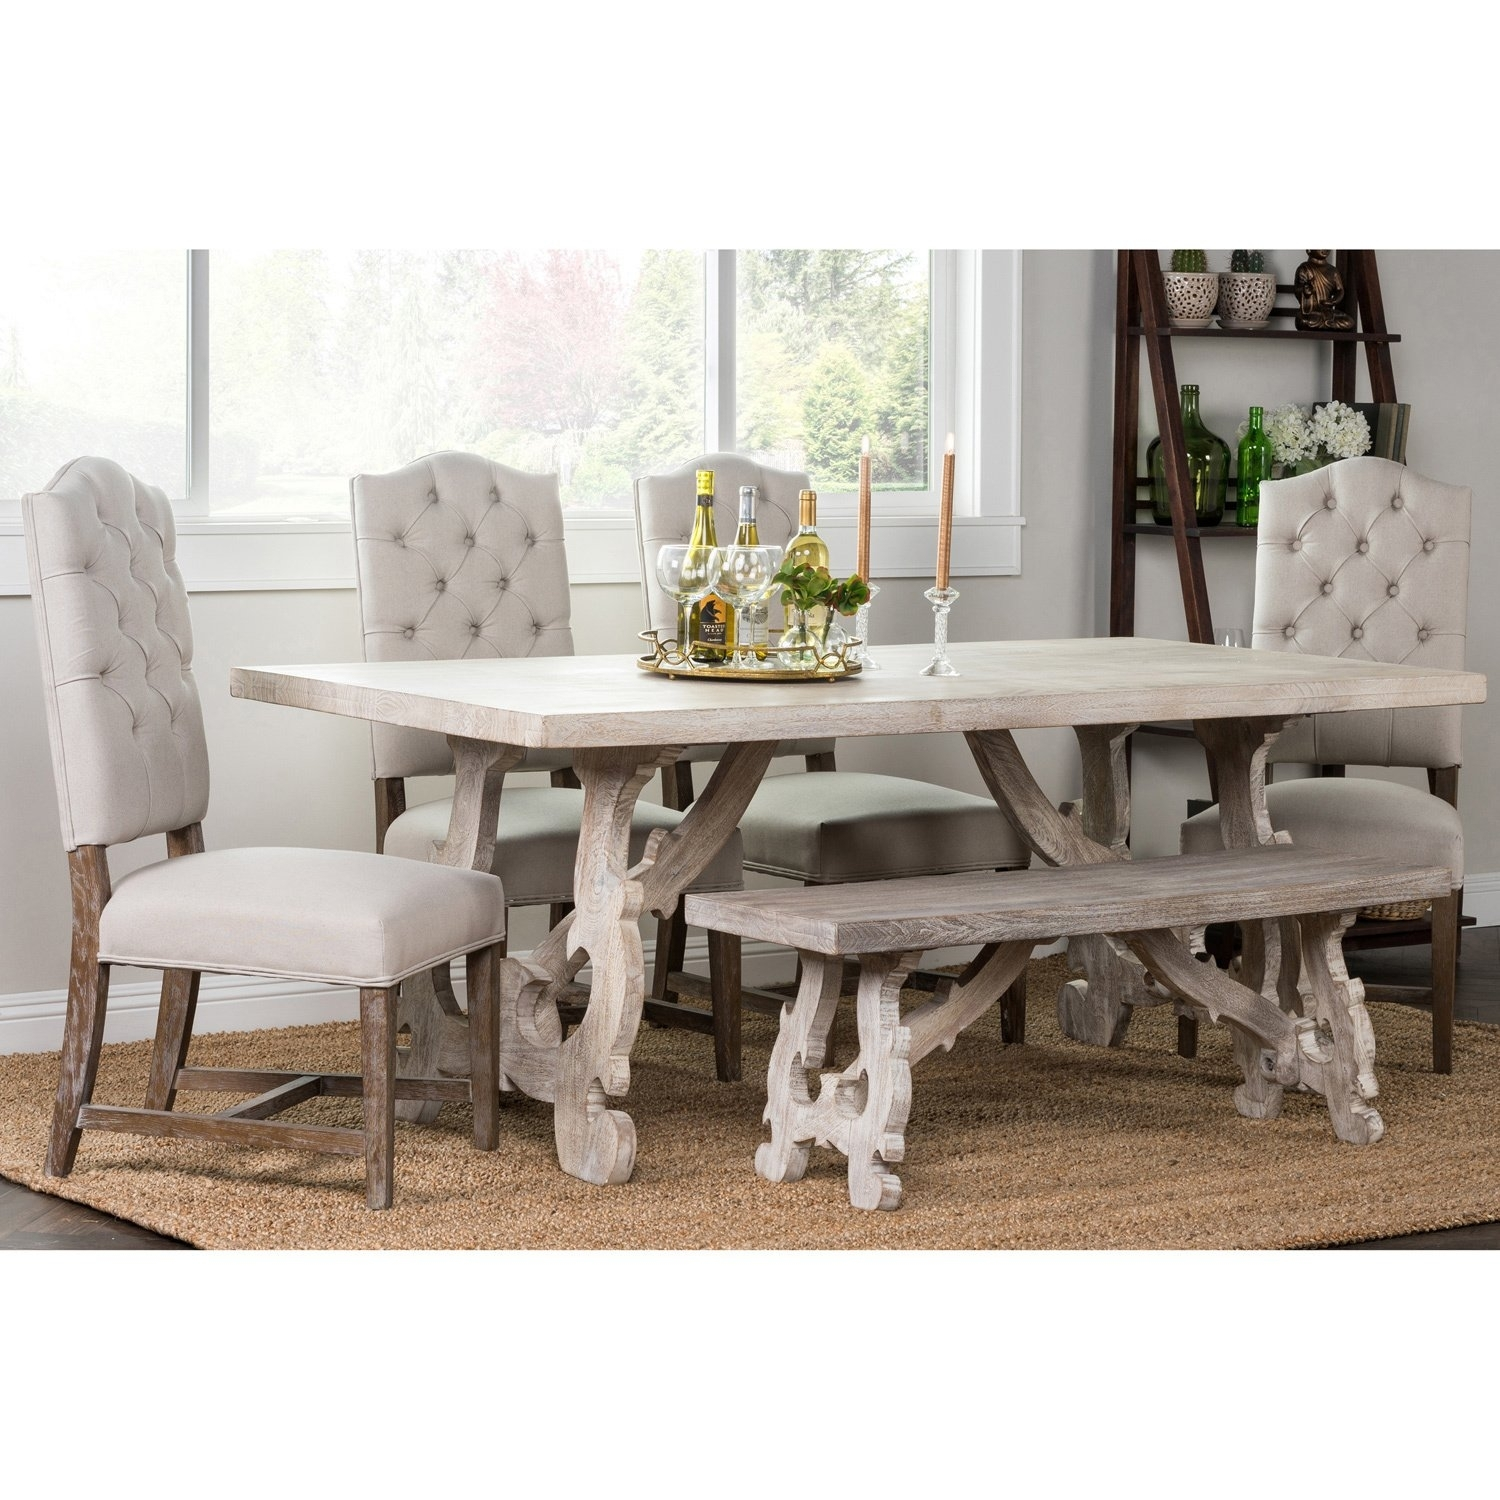 Shop Elliott Rustic Hand Crafted 76 Inch Dining Tablekosas Home For Most Recent 87 Inch Dining Tables (View 17 of 20)